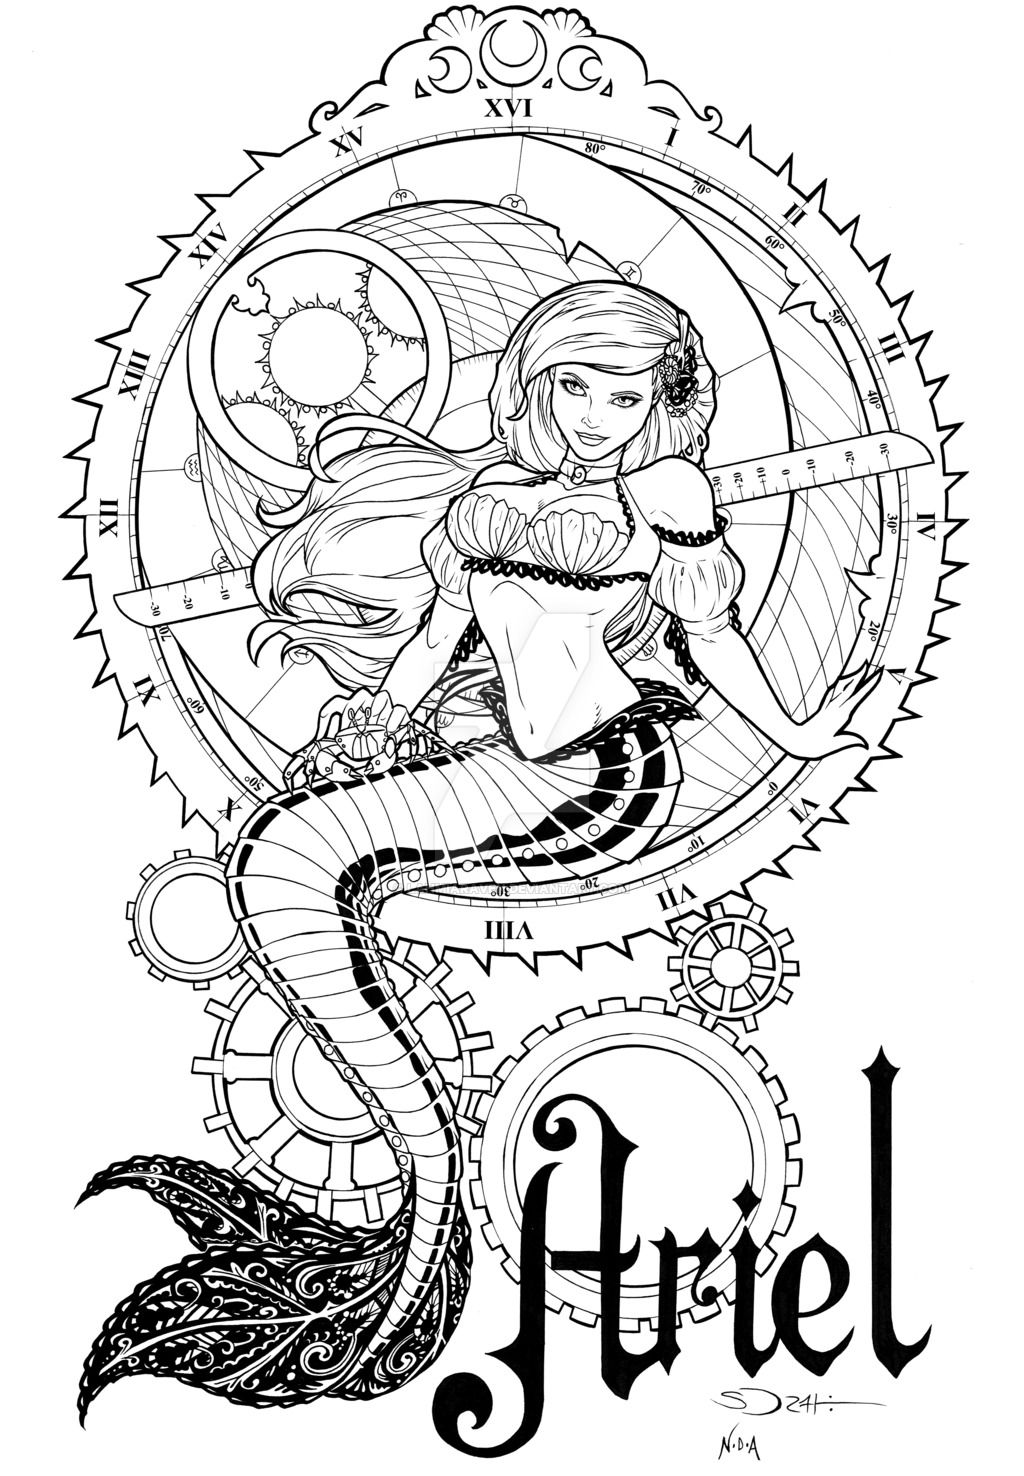 steampunk gothic fairy coloring pages pin by jessica on colouring pages fairy coloring pages pages fairy steampunk coloring gothic